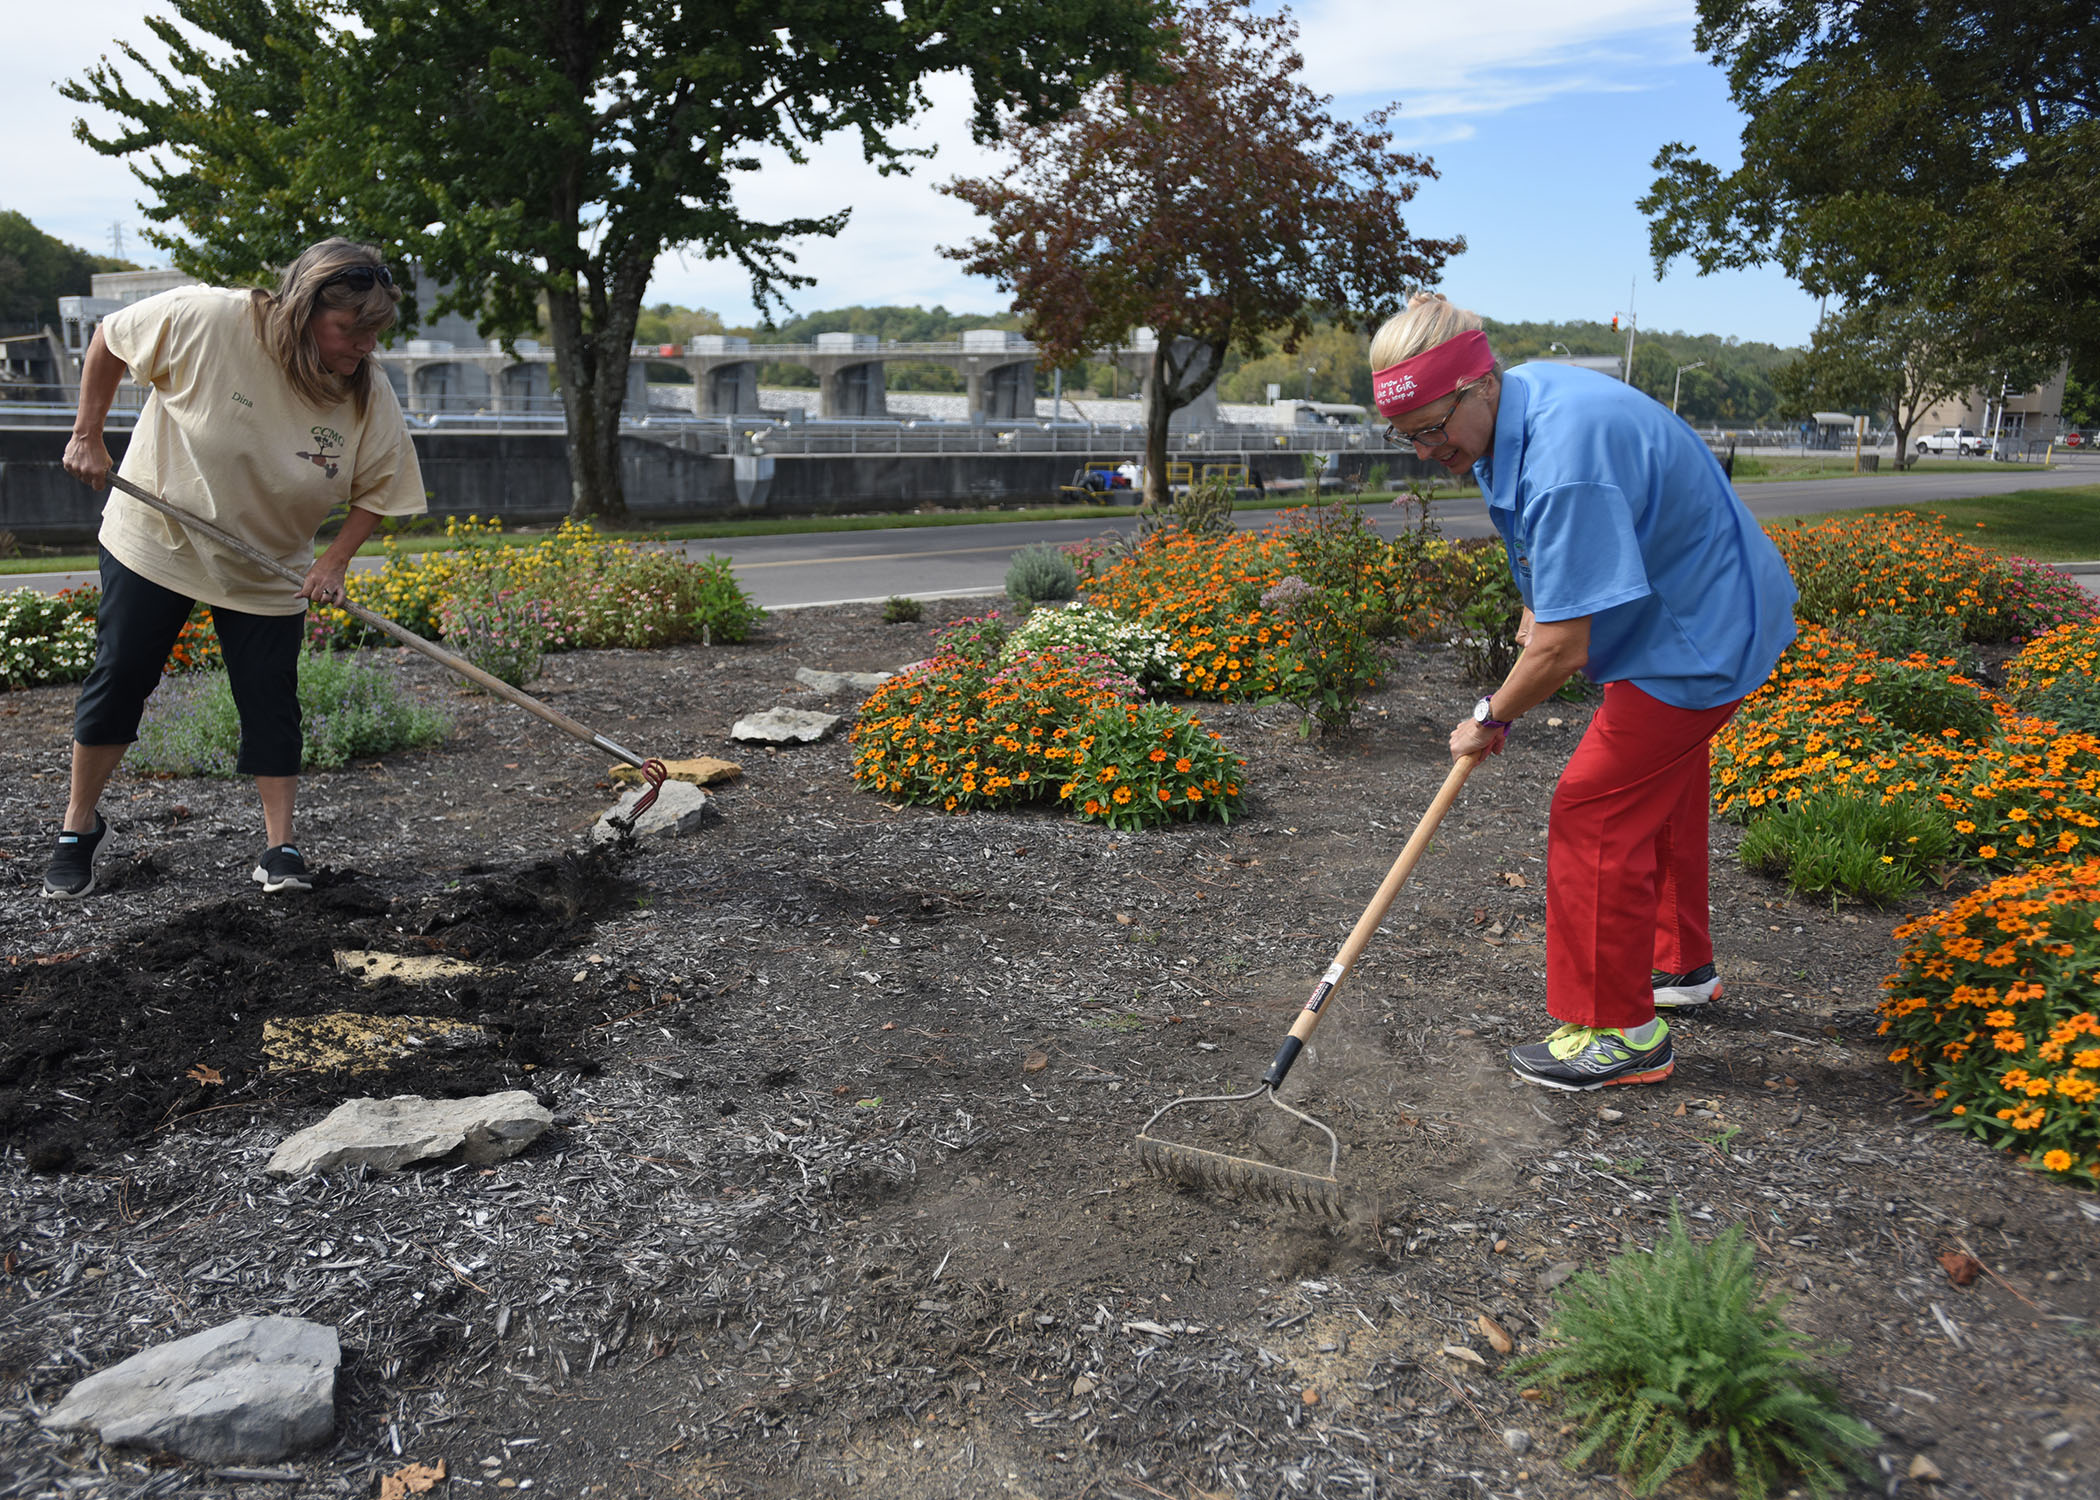 Park Ranger Dina Henninger (Left) and Cheatham County Master Gardener Intern Suzanne Hale tidy up a butterfly and bee garden Sept. 30, 2017 at Cheatham Lake in Ashland City, Tenn.  They are seeking volunteer gardeners who would like to join the team responsible for developing, maintaining and improving the gardens, working toward certification as a Monarch Waystation. (Photo by Lee Roberts)